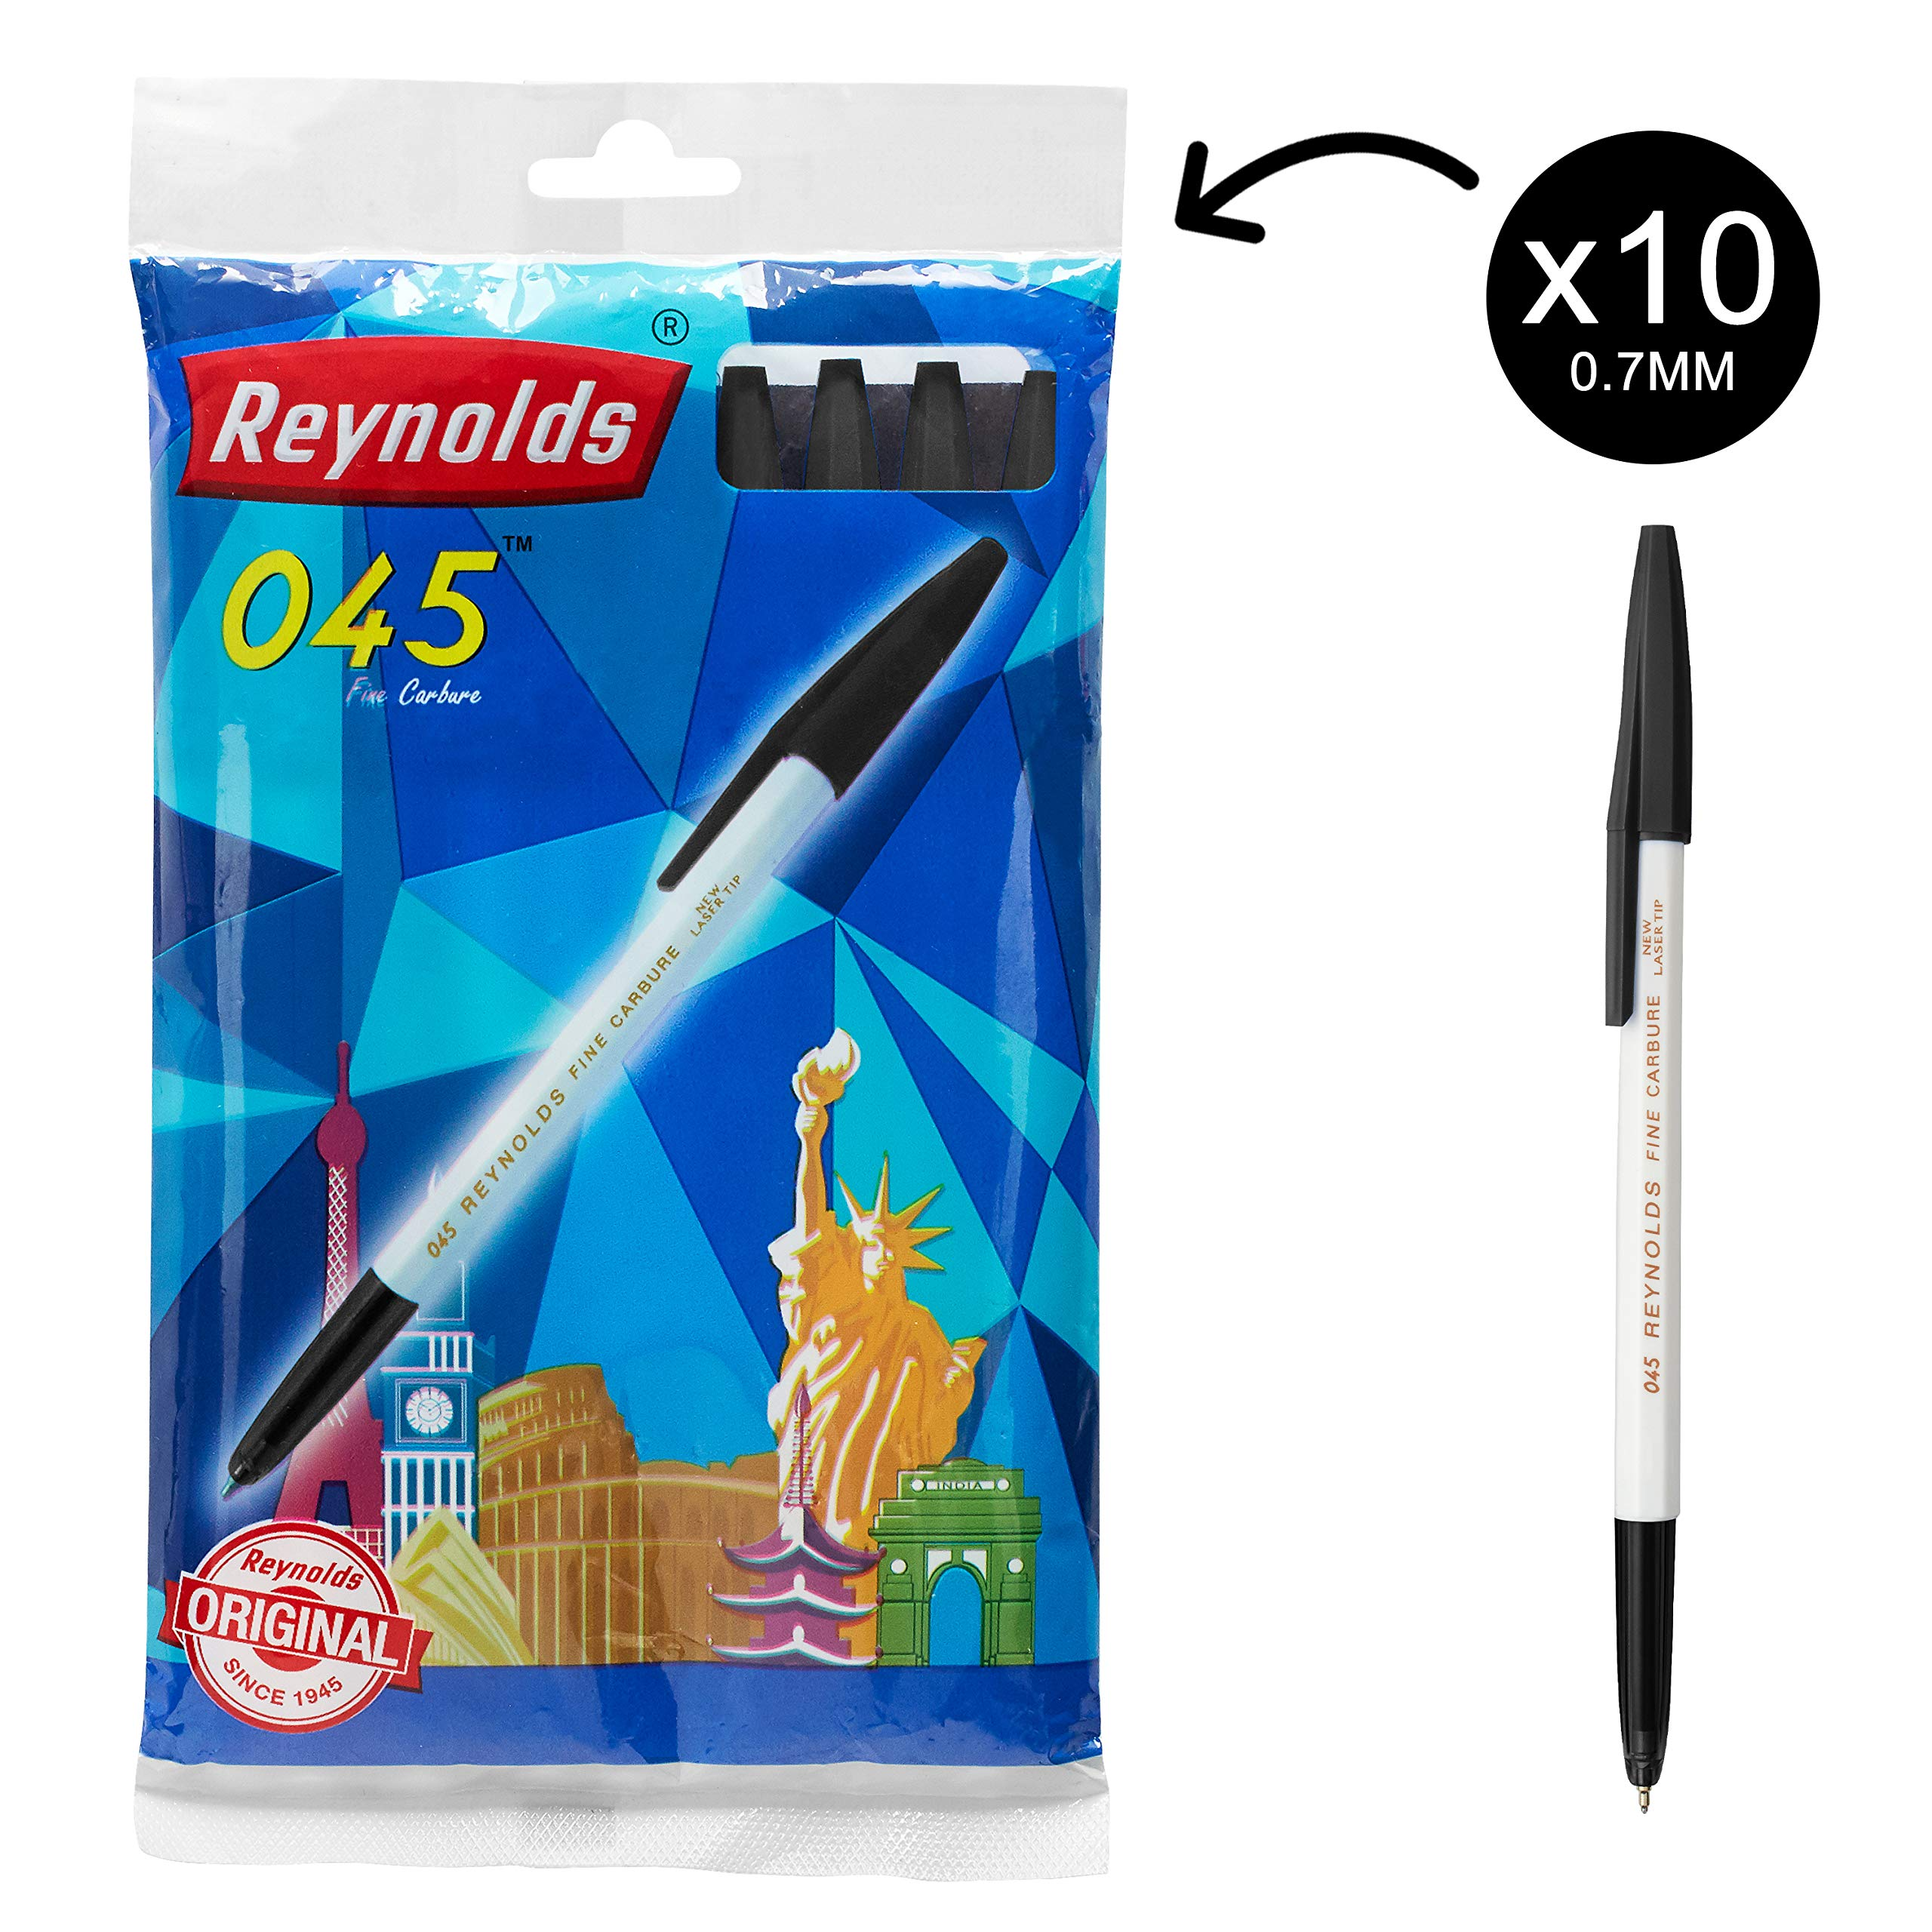 Reynolds 045 FINE CARBURE Ball Point Pens  Blue Ink  10 Ball Point Pens